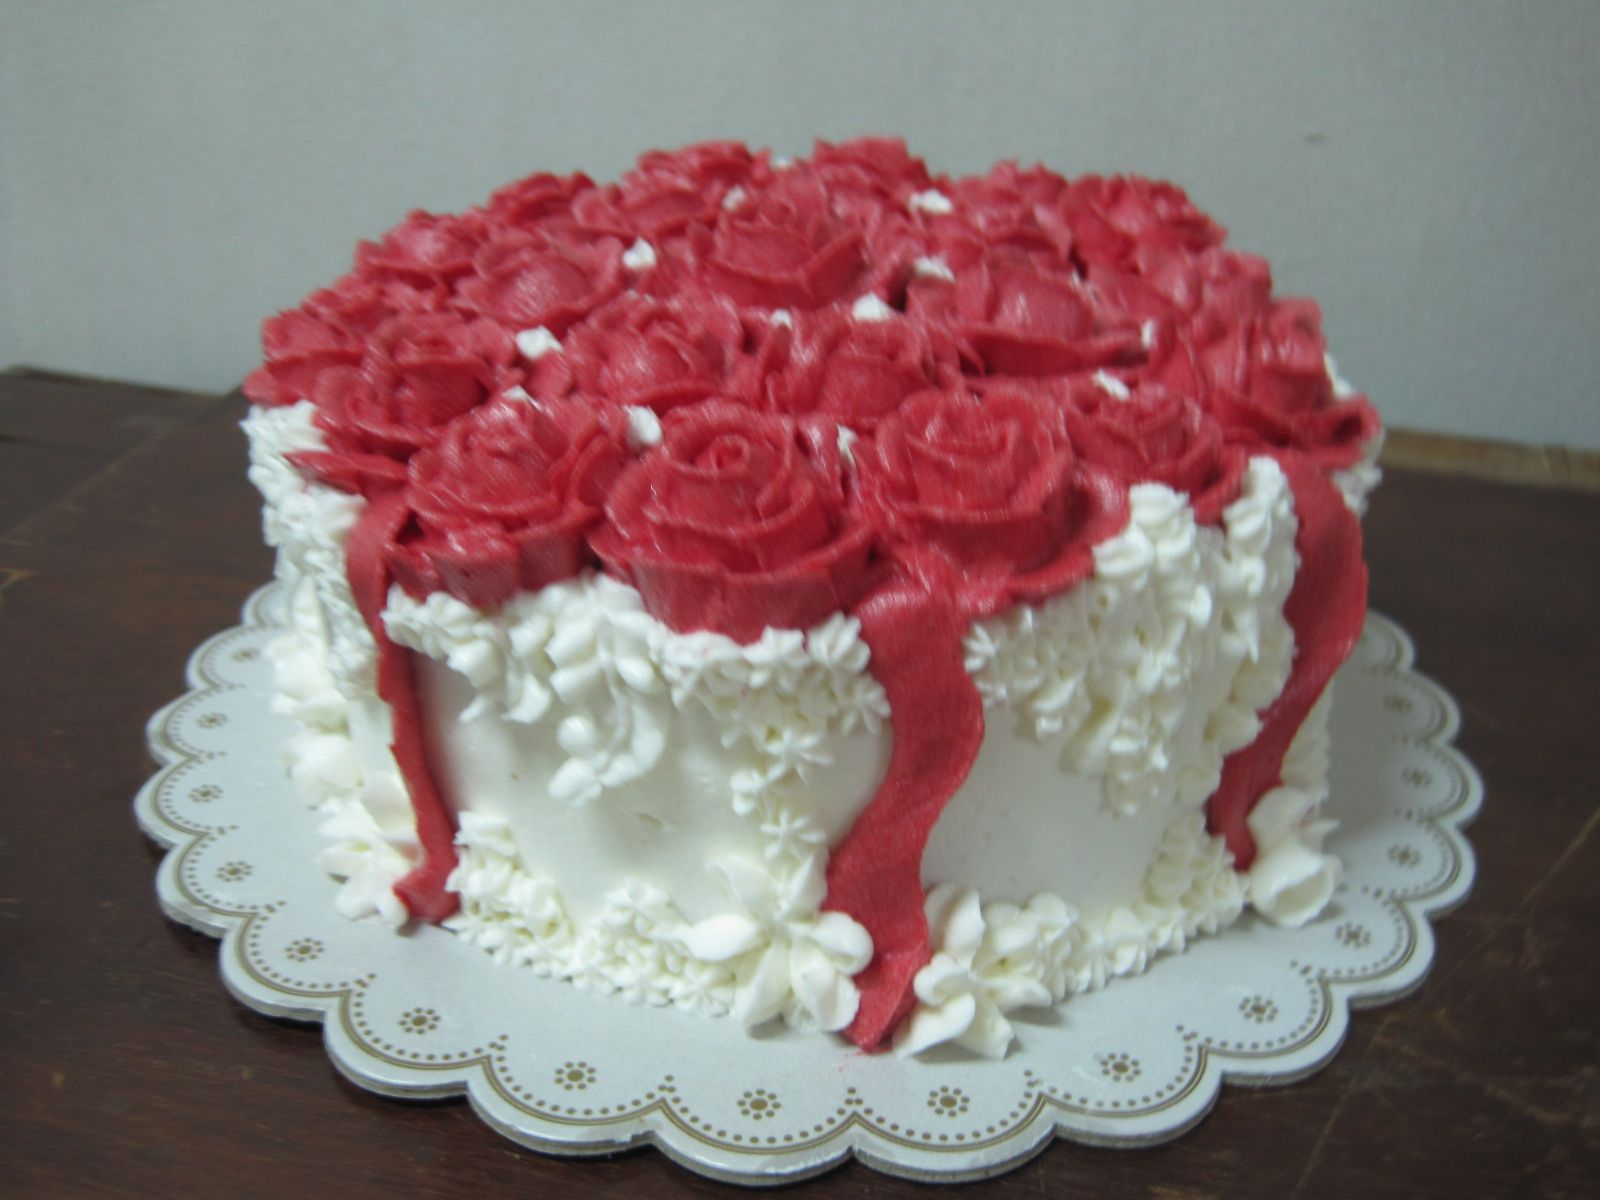 90 Happy Birthday Cake And Roses Delicious And A Beautiful